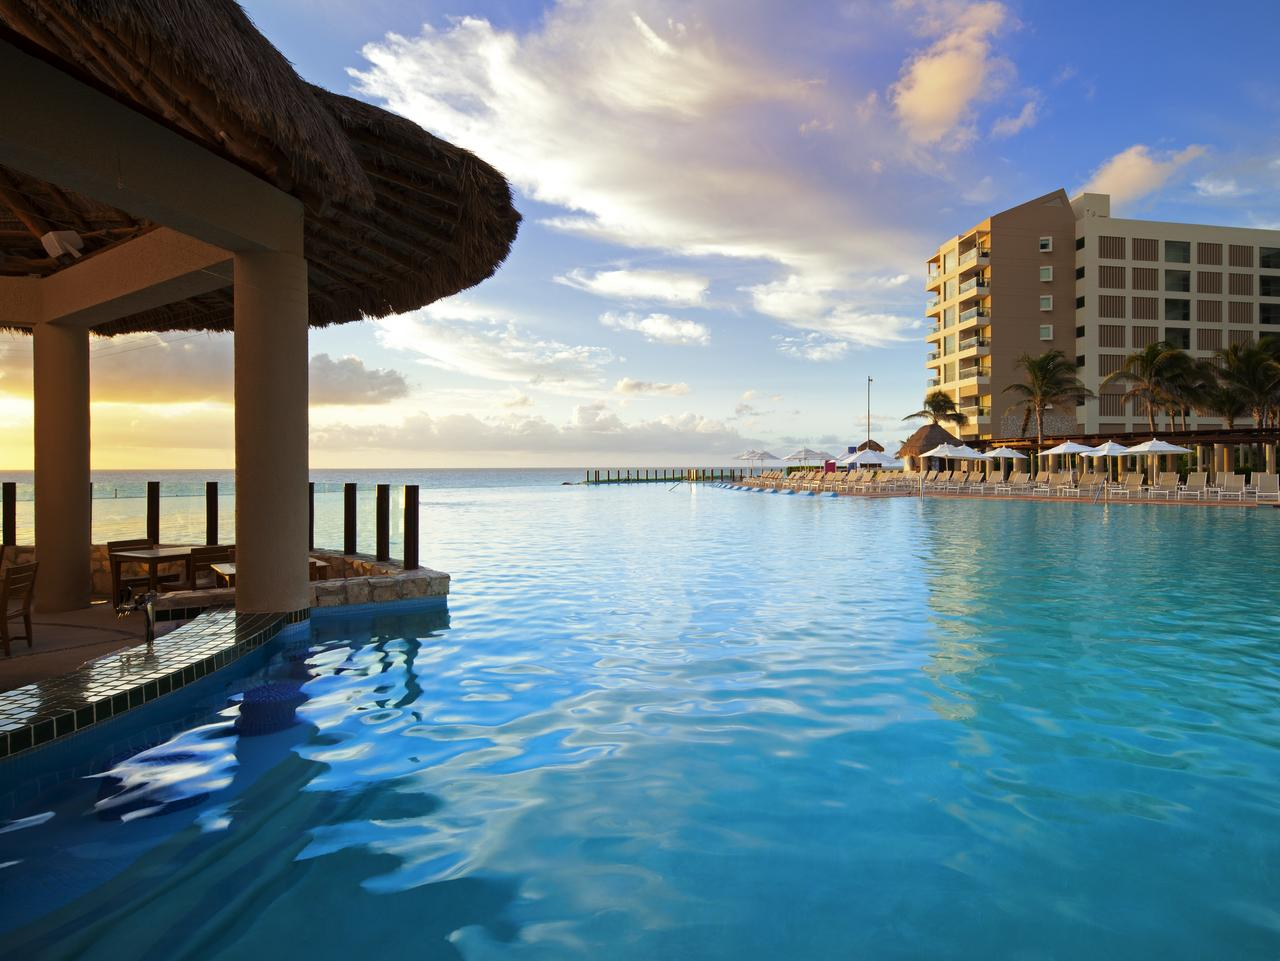 Westin Lagunamar, Mexico, features a glamorous swim-up bar.